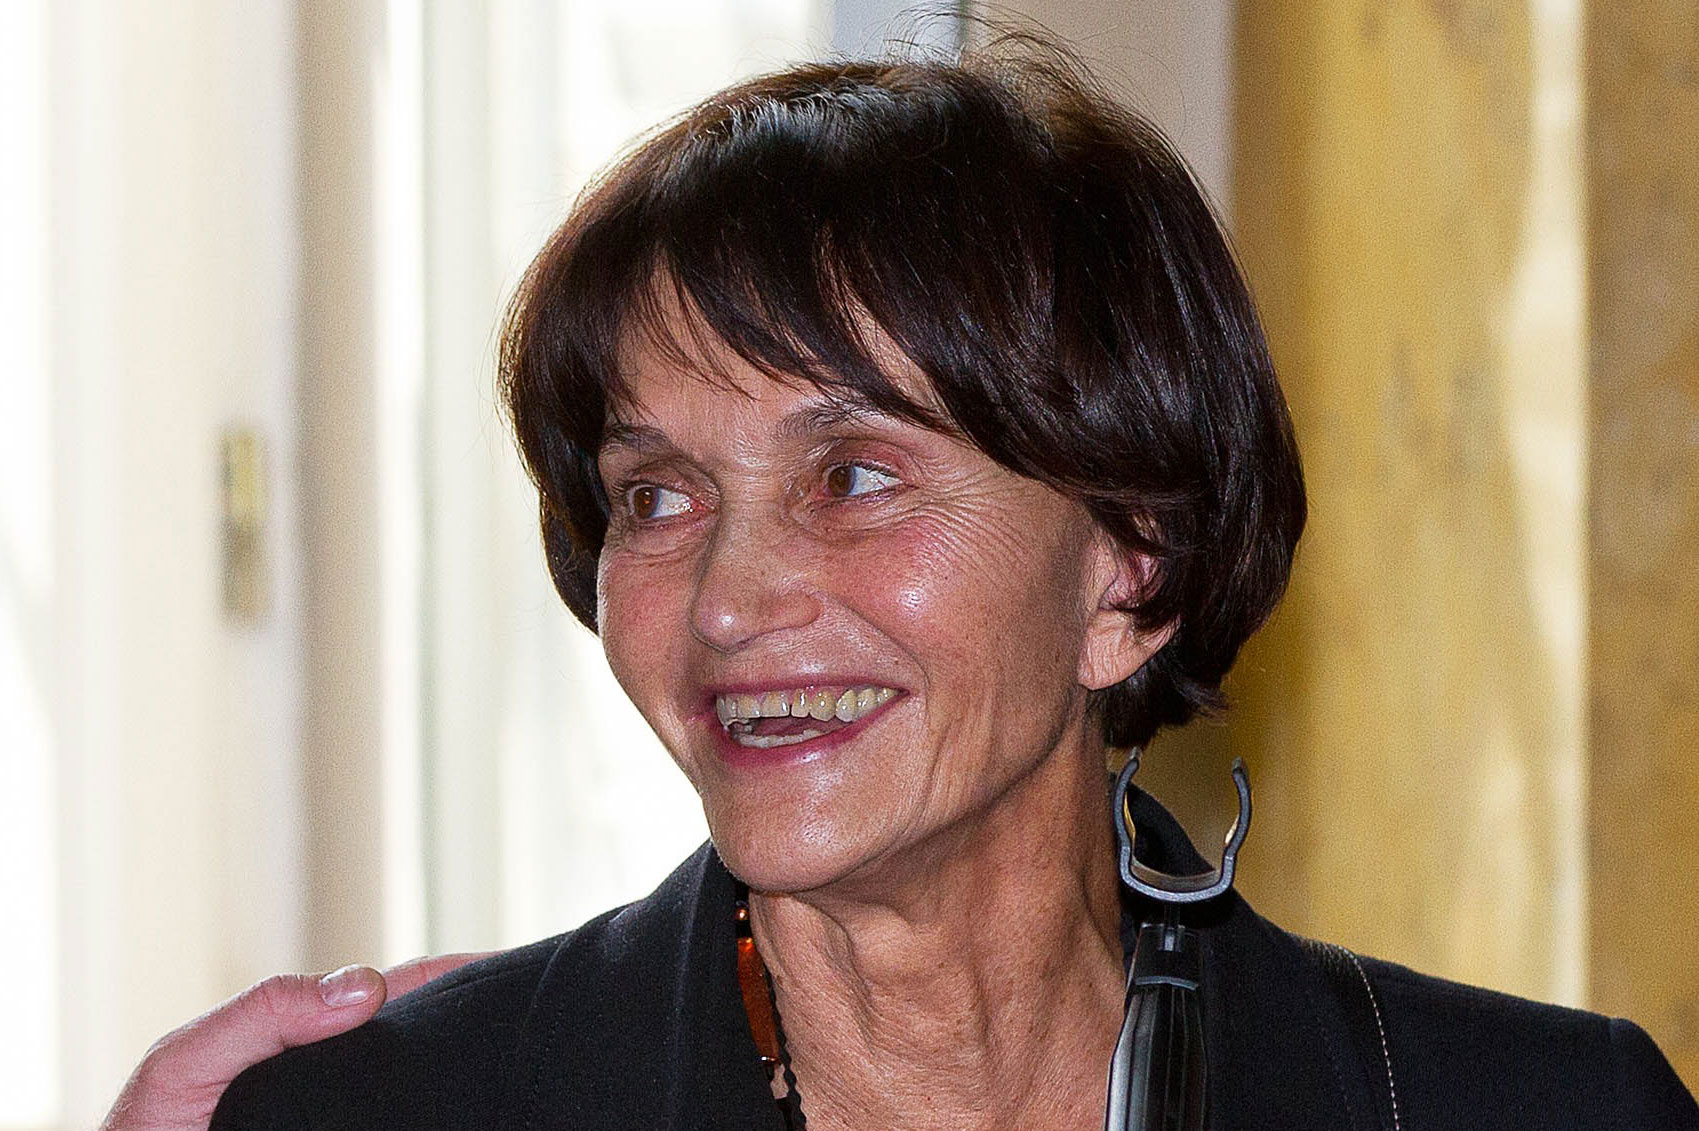 """Princess María Teresa of Bourbon-Parma attends a presentation of her book """"Les bourbon Parme, une famille engagée dans l'histoire"""" in Parma, Italy, on September 27, 2014."""